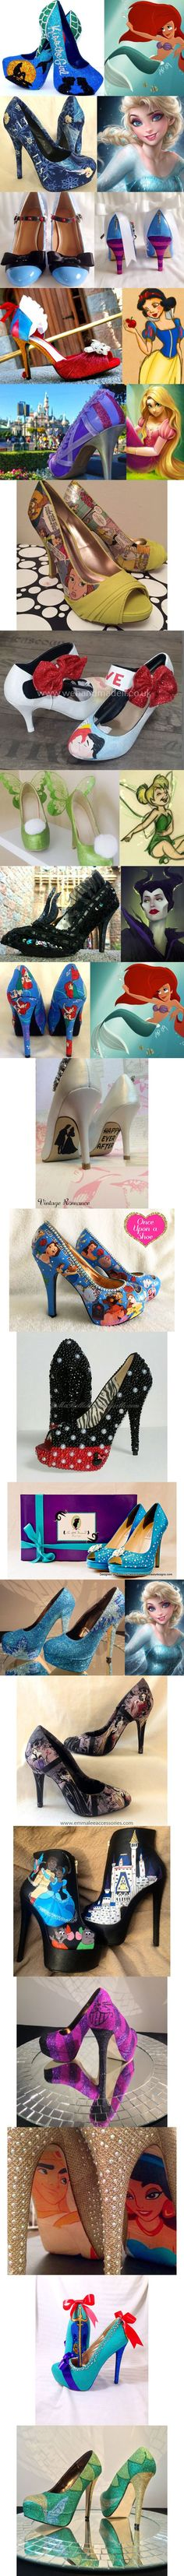 25 Disney Princess Inspired High Heel Shoes